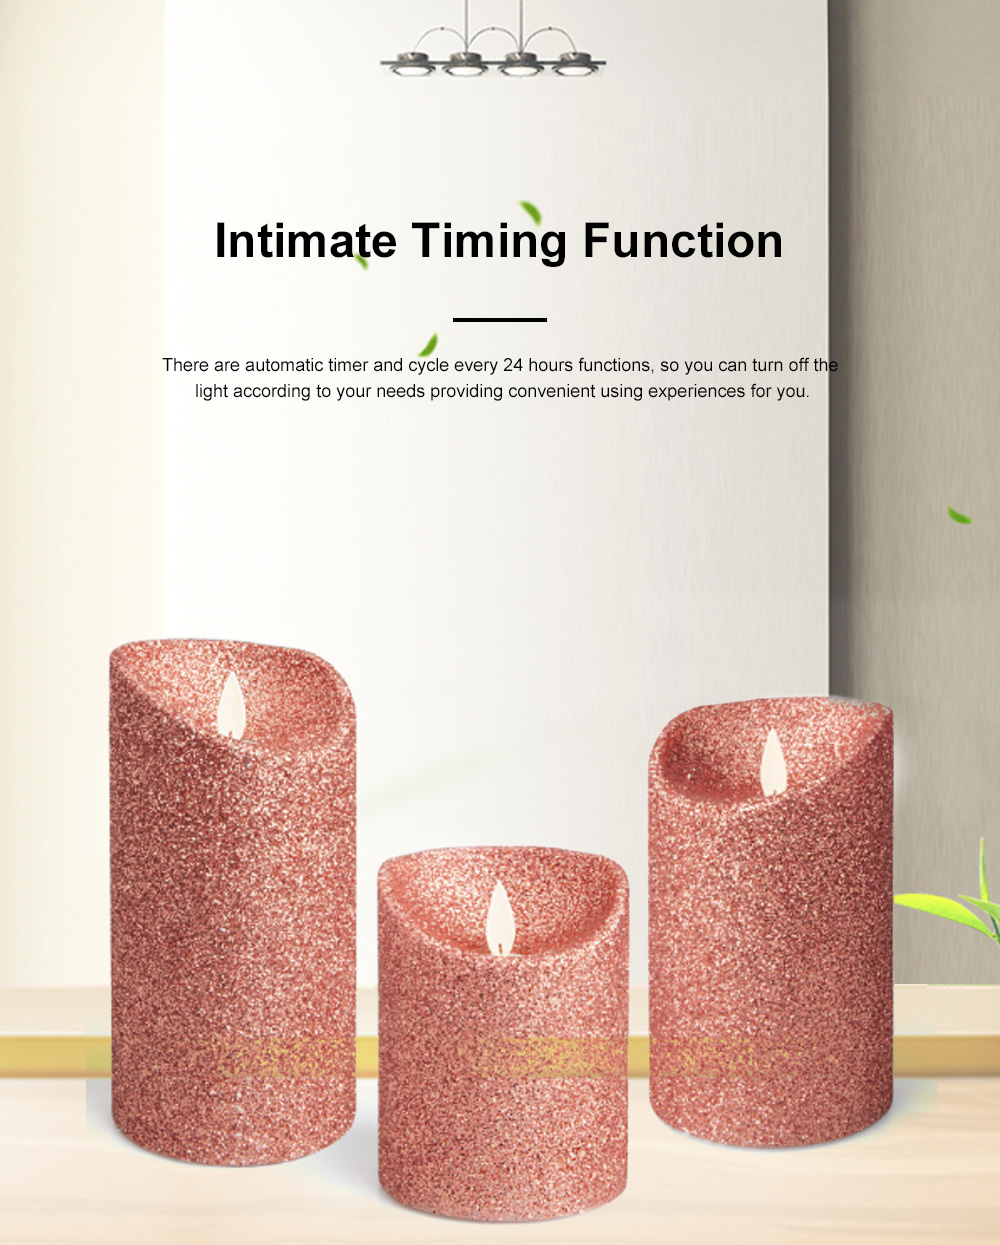 3PCS Led Candle Light Suit Rose Golden Simulation Flame Smokeless Electric Candle Lights with Remote Control Adjustable Automatic Timer 2